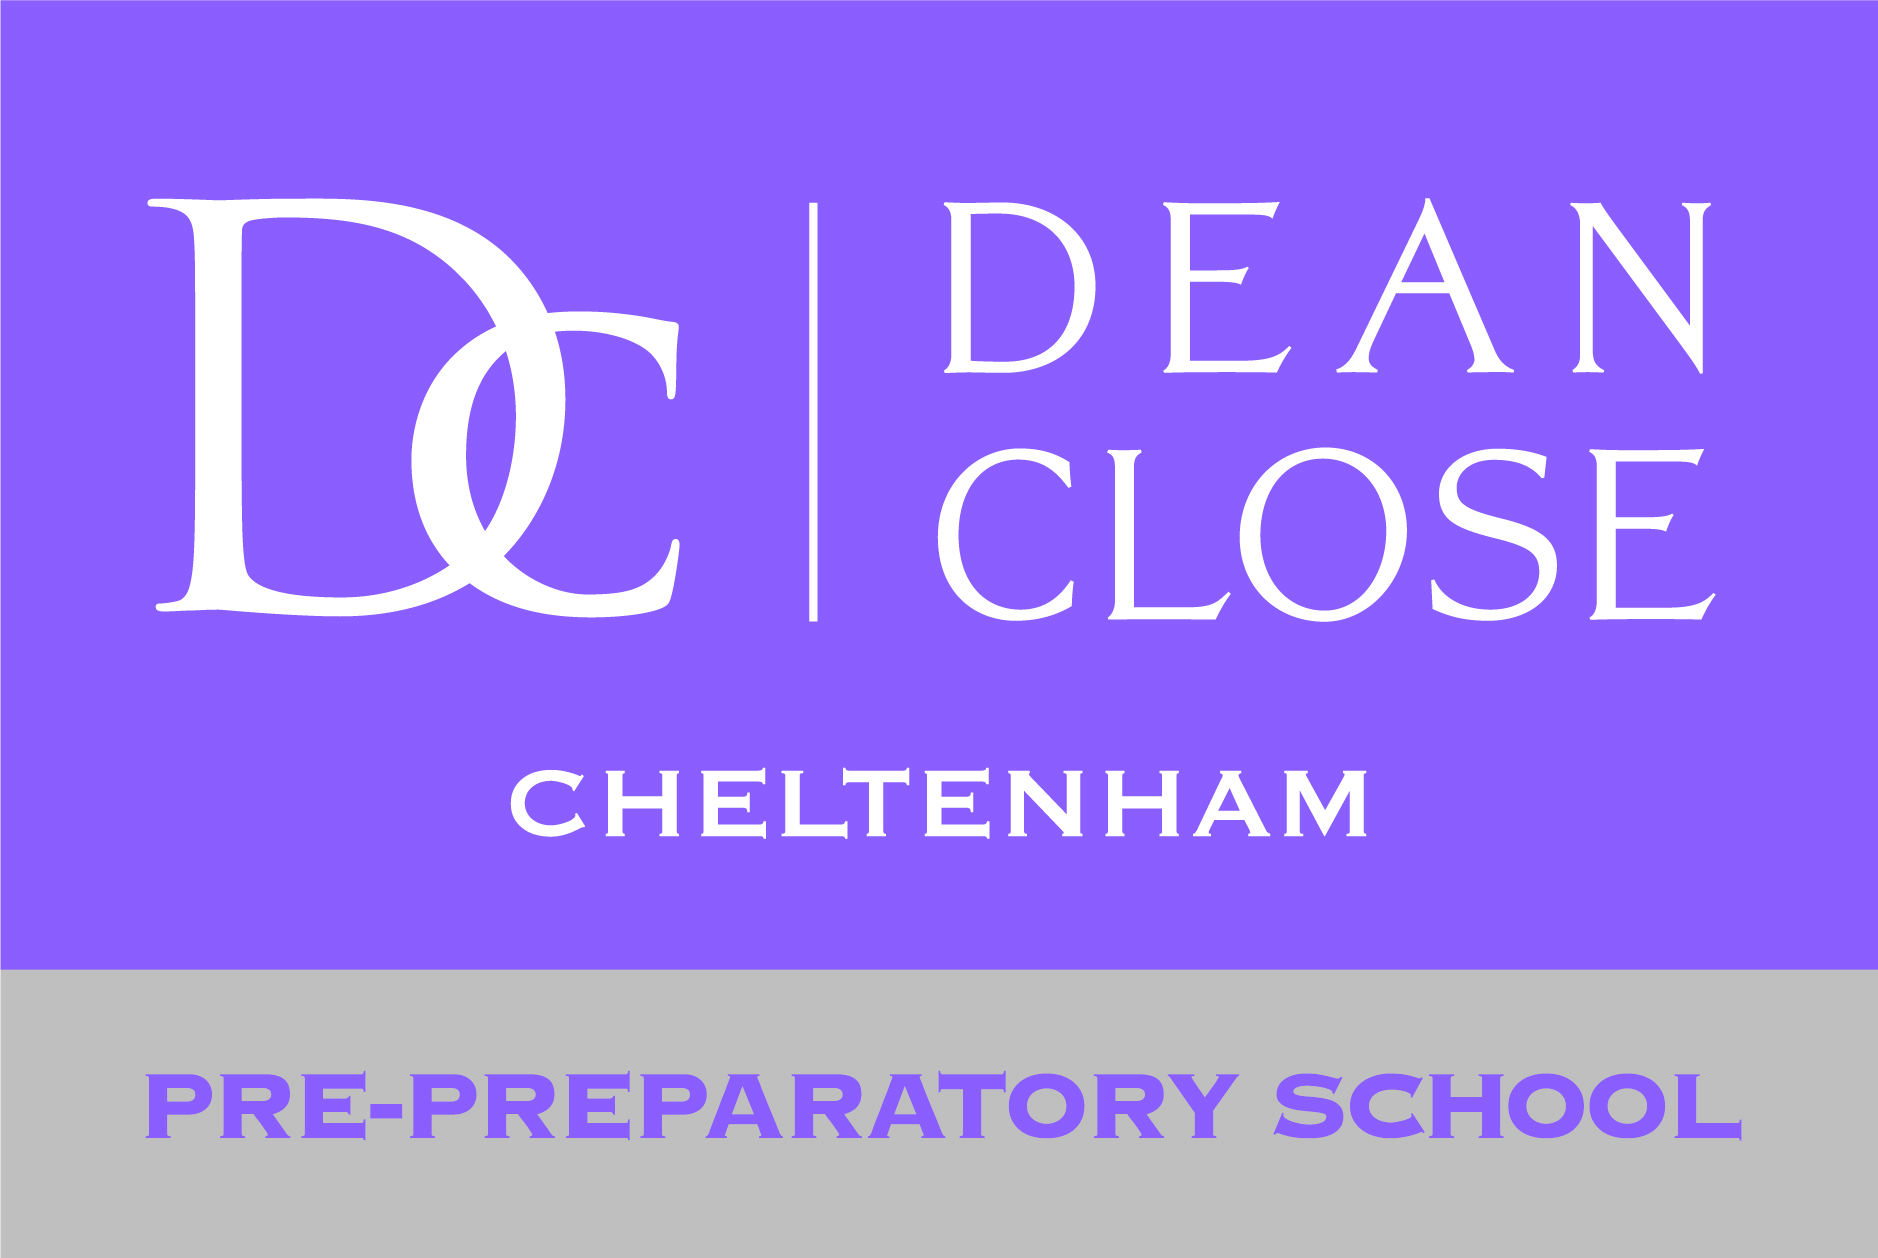 Dean Close Pre-Preparatory School